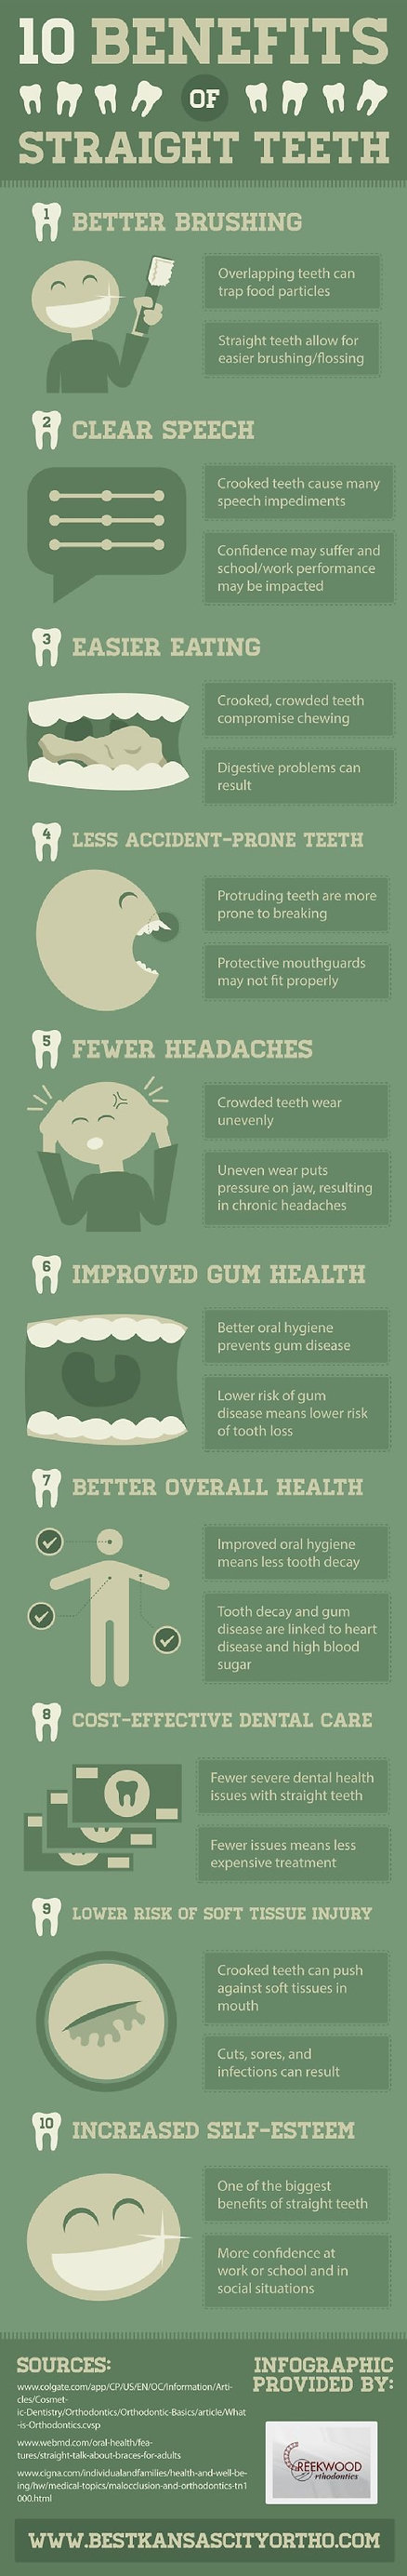 10 benefits of straight teeth